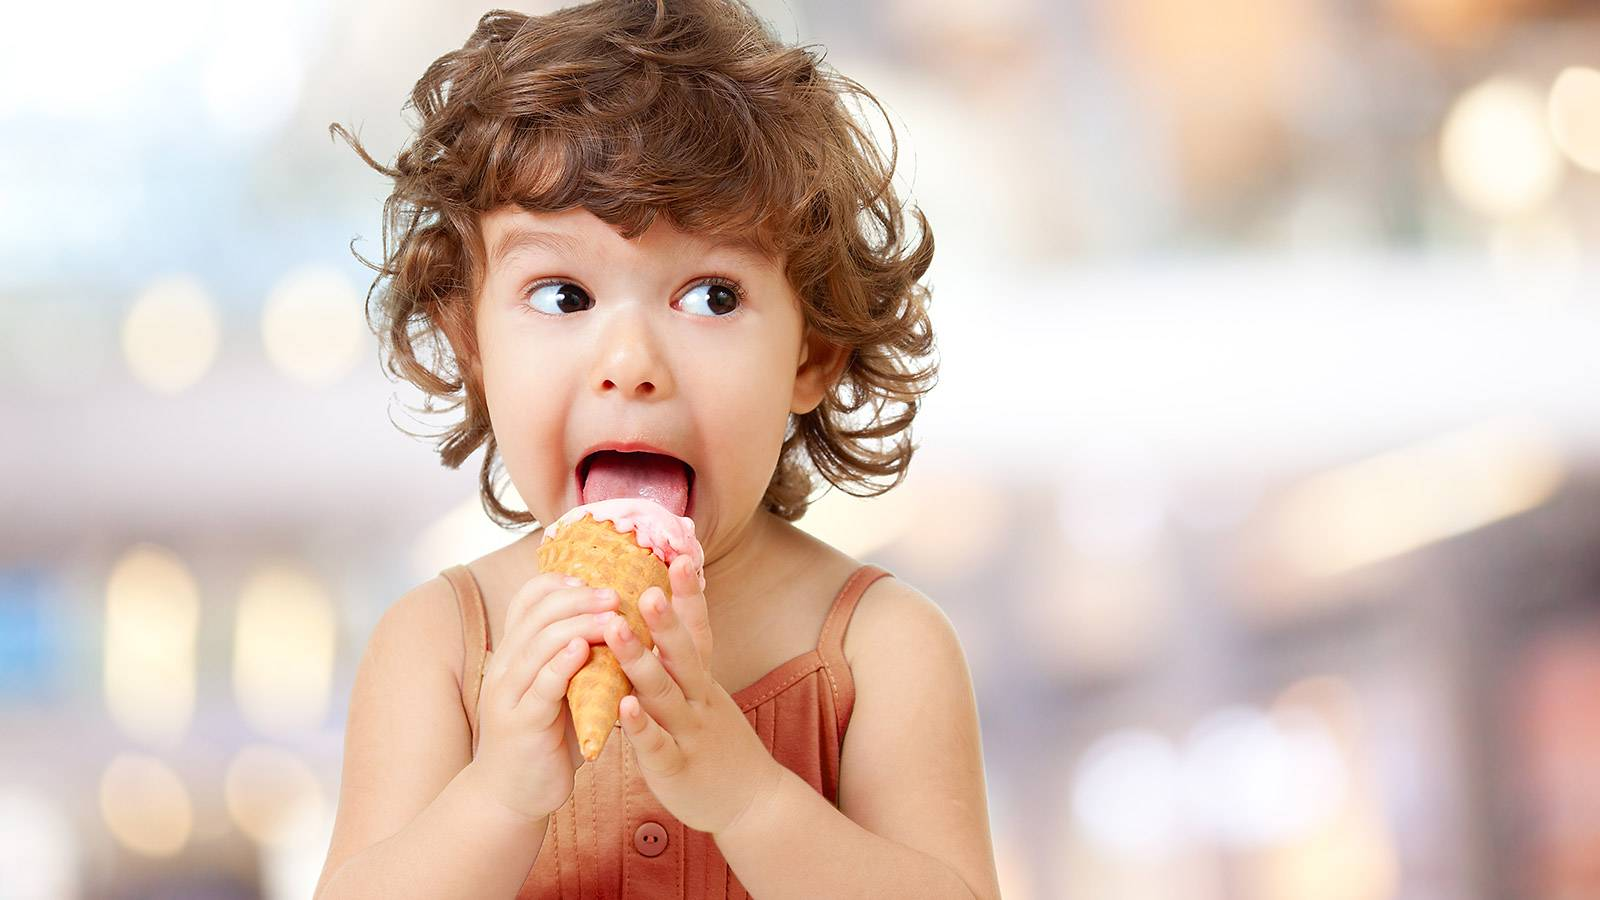 Tots-5-ways-to-stop-your-child-from-comfort-eating-1